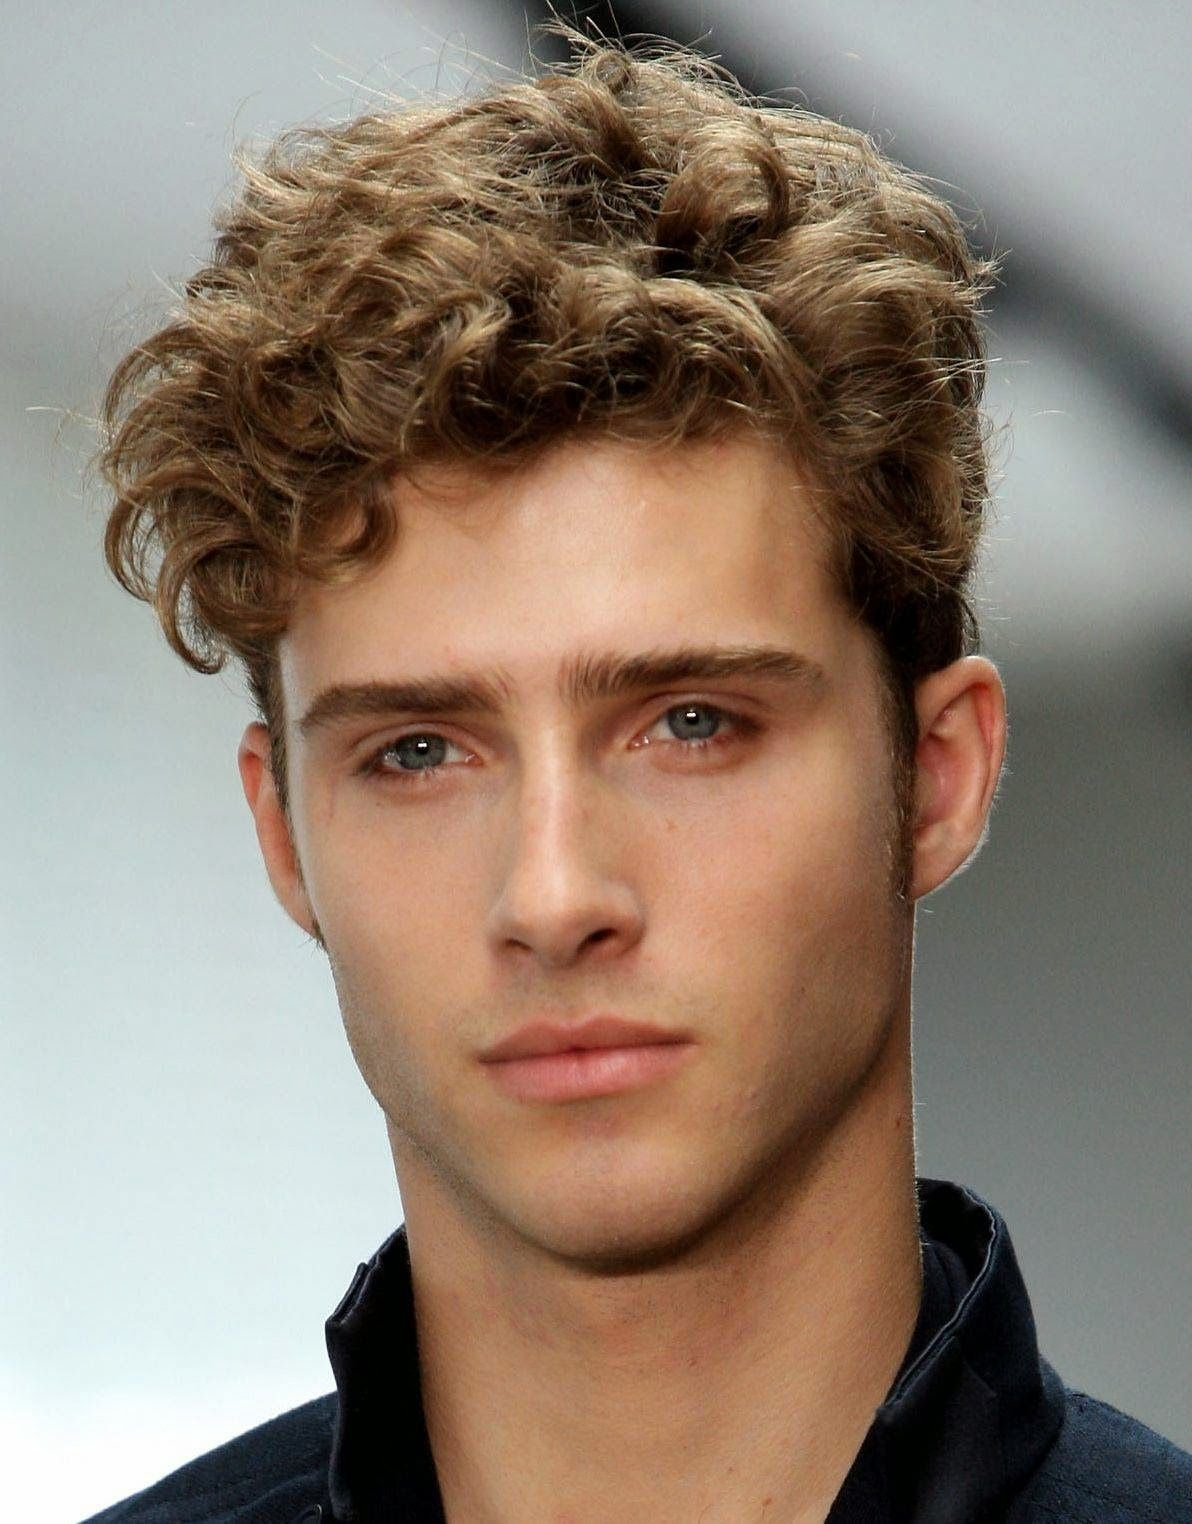 Hipster Fade Haircut Mens Hipster Hairstyles For Manfriend